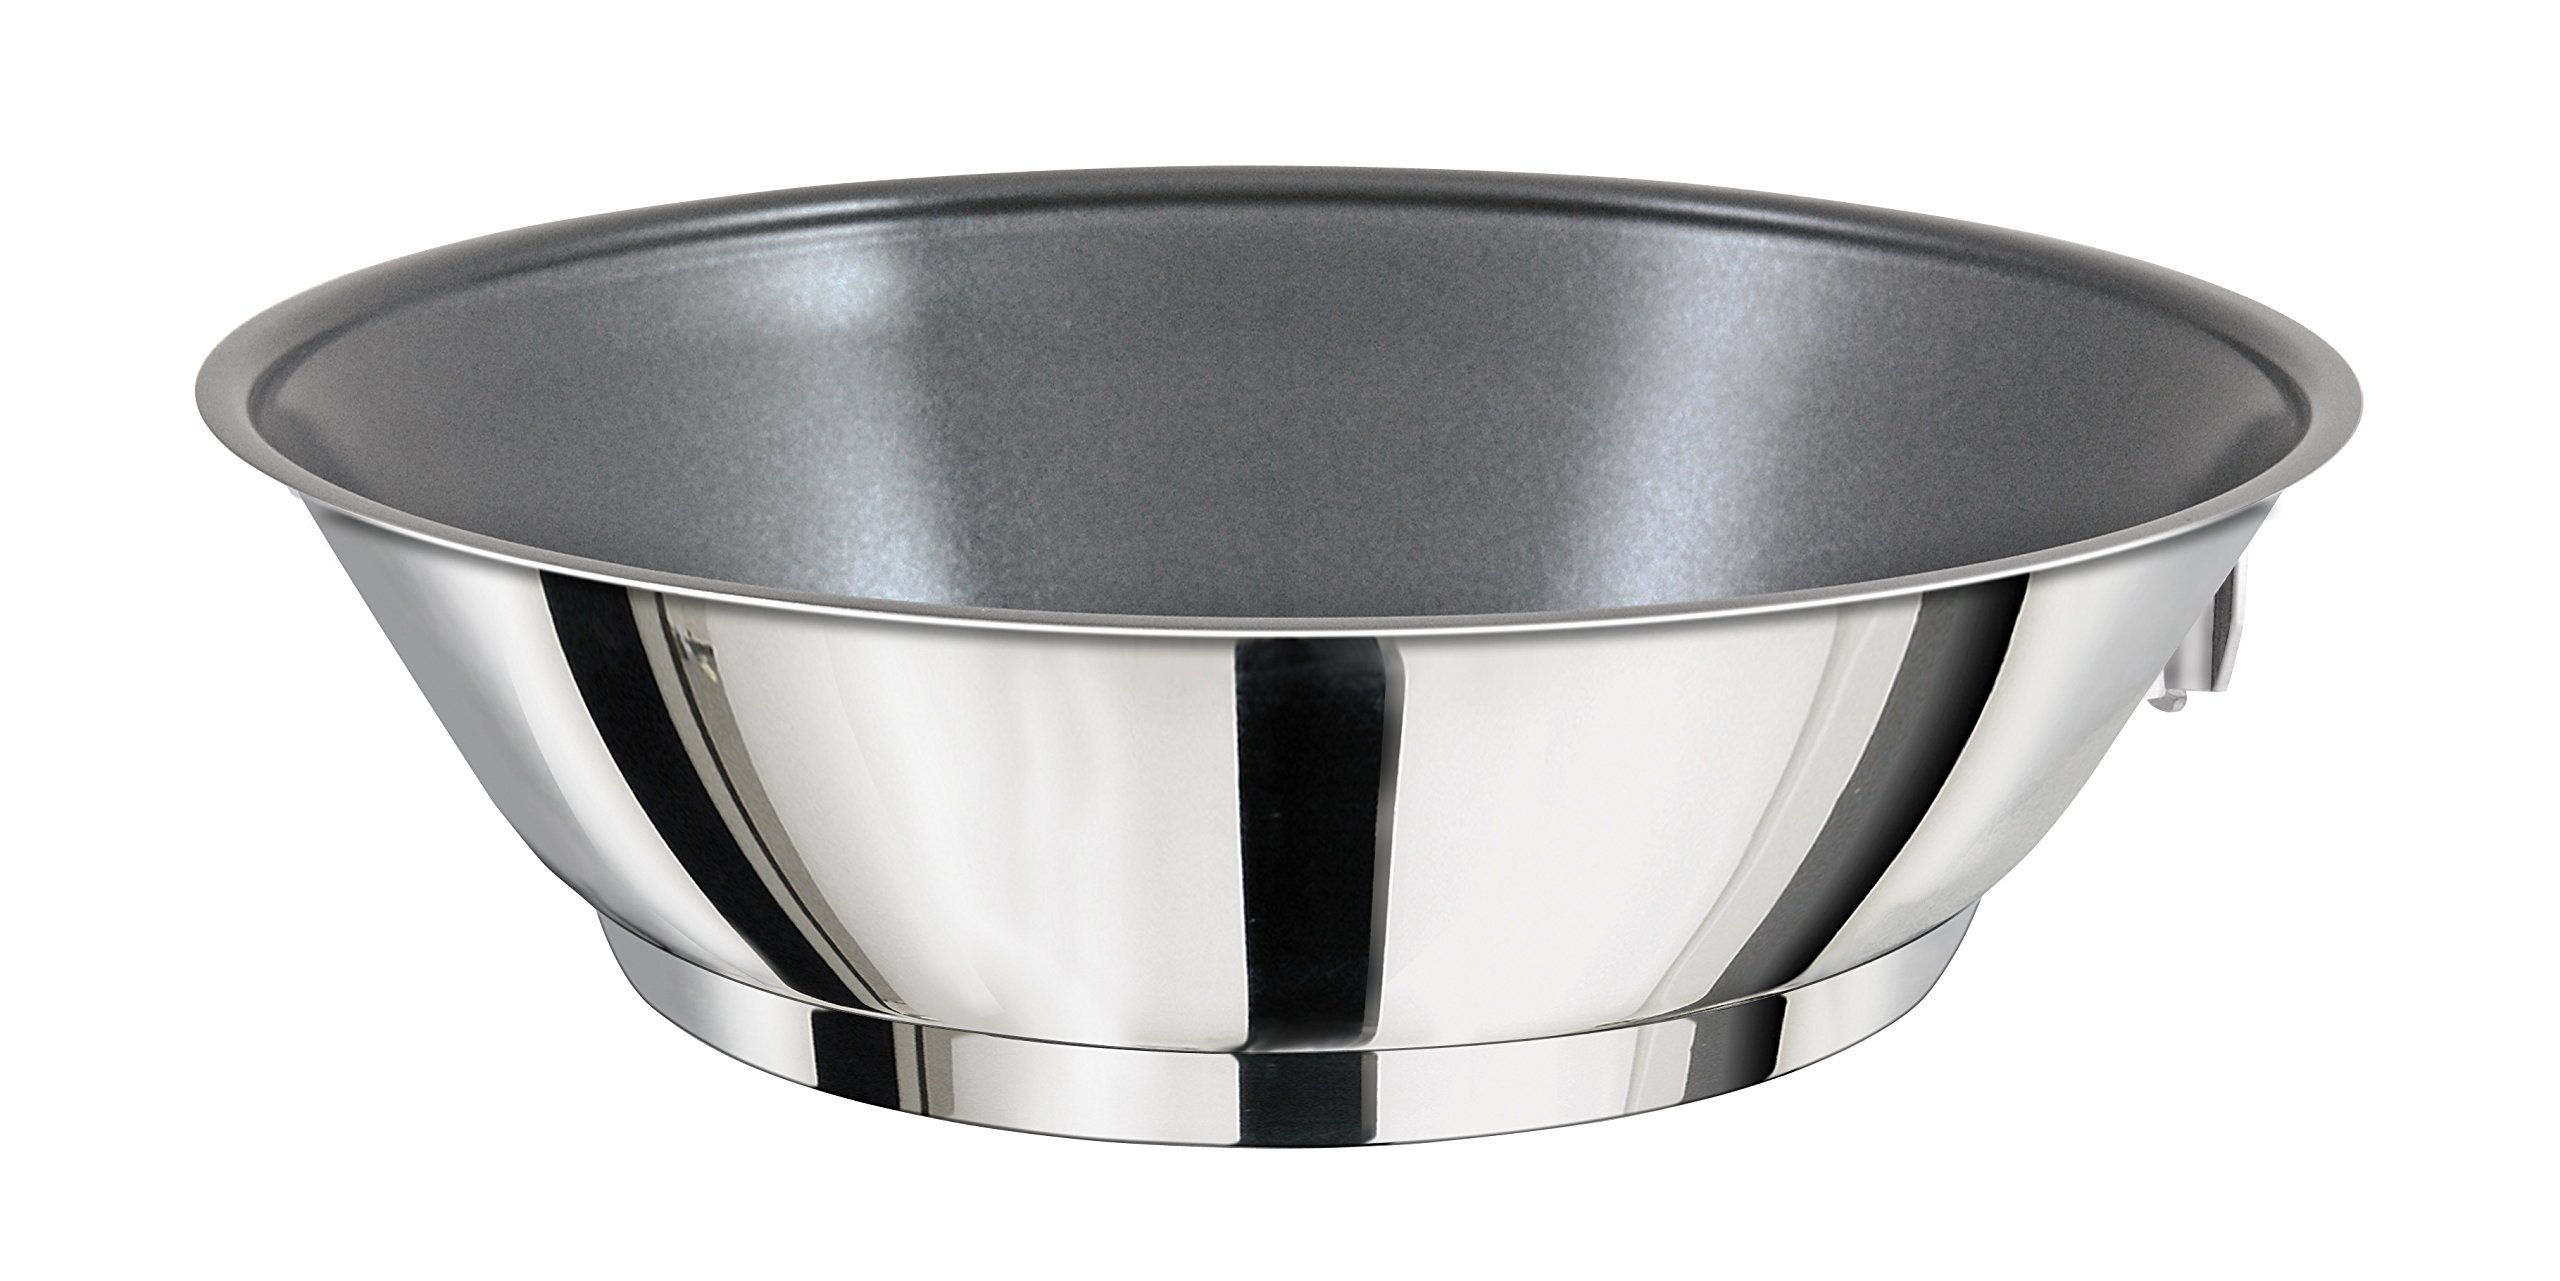 Magma Products, A10-369-IND Gourmet Nesting Induction Stainless Steel Saute/Omelette Pan